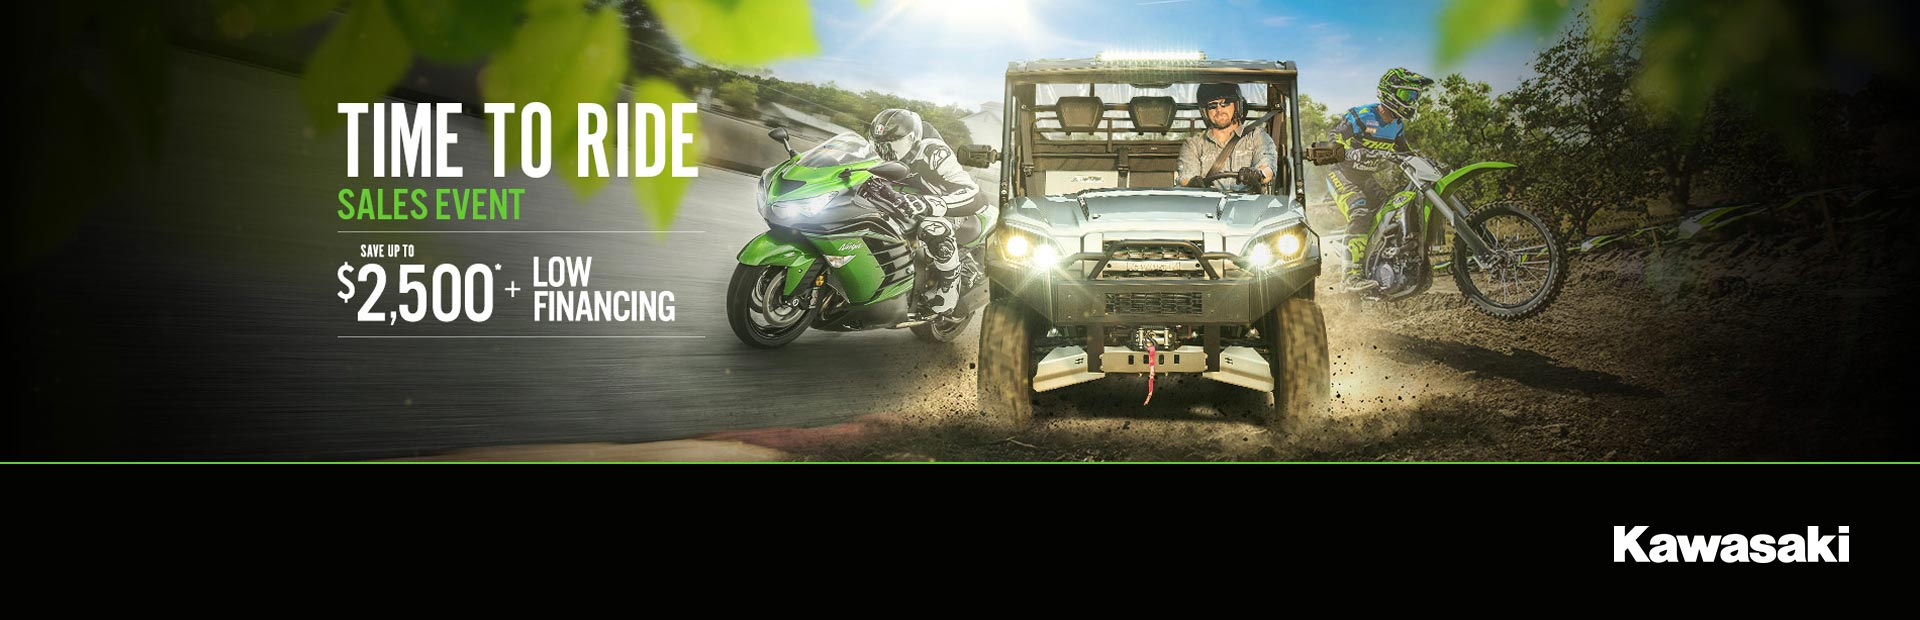 Kawasaki: Time To Ride Sales Event